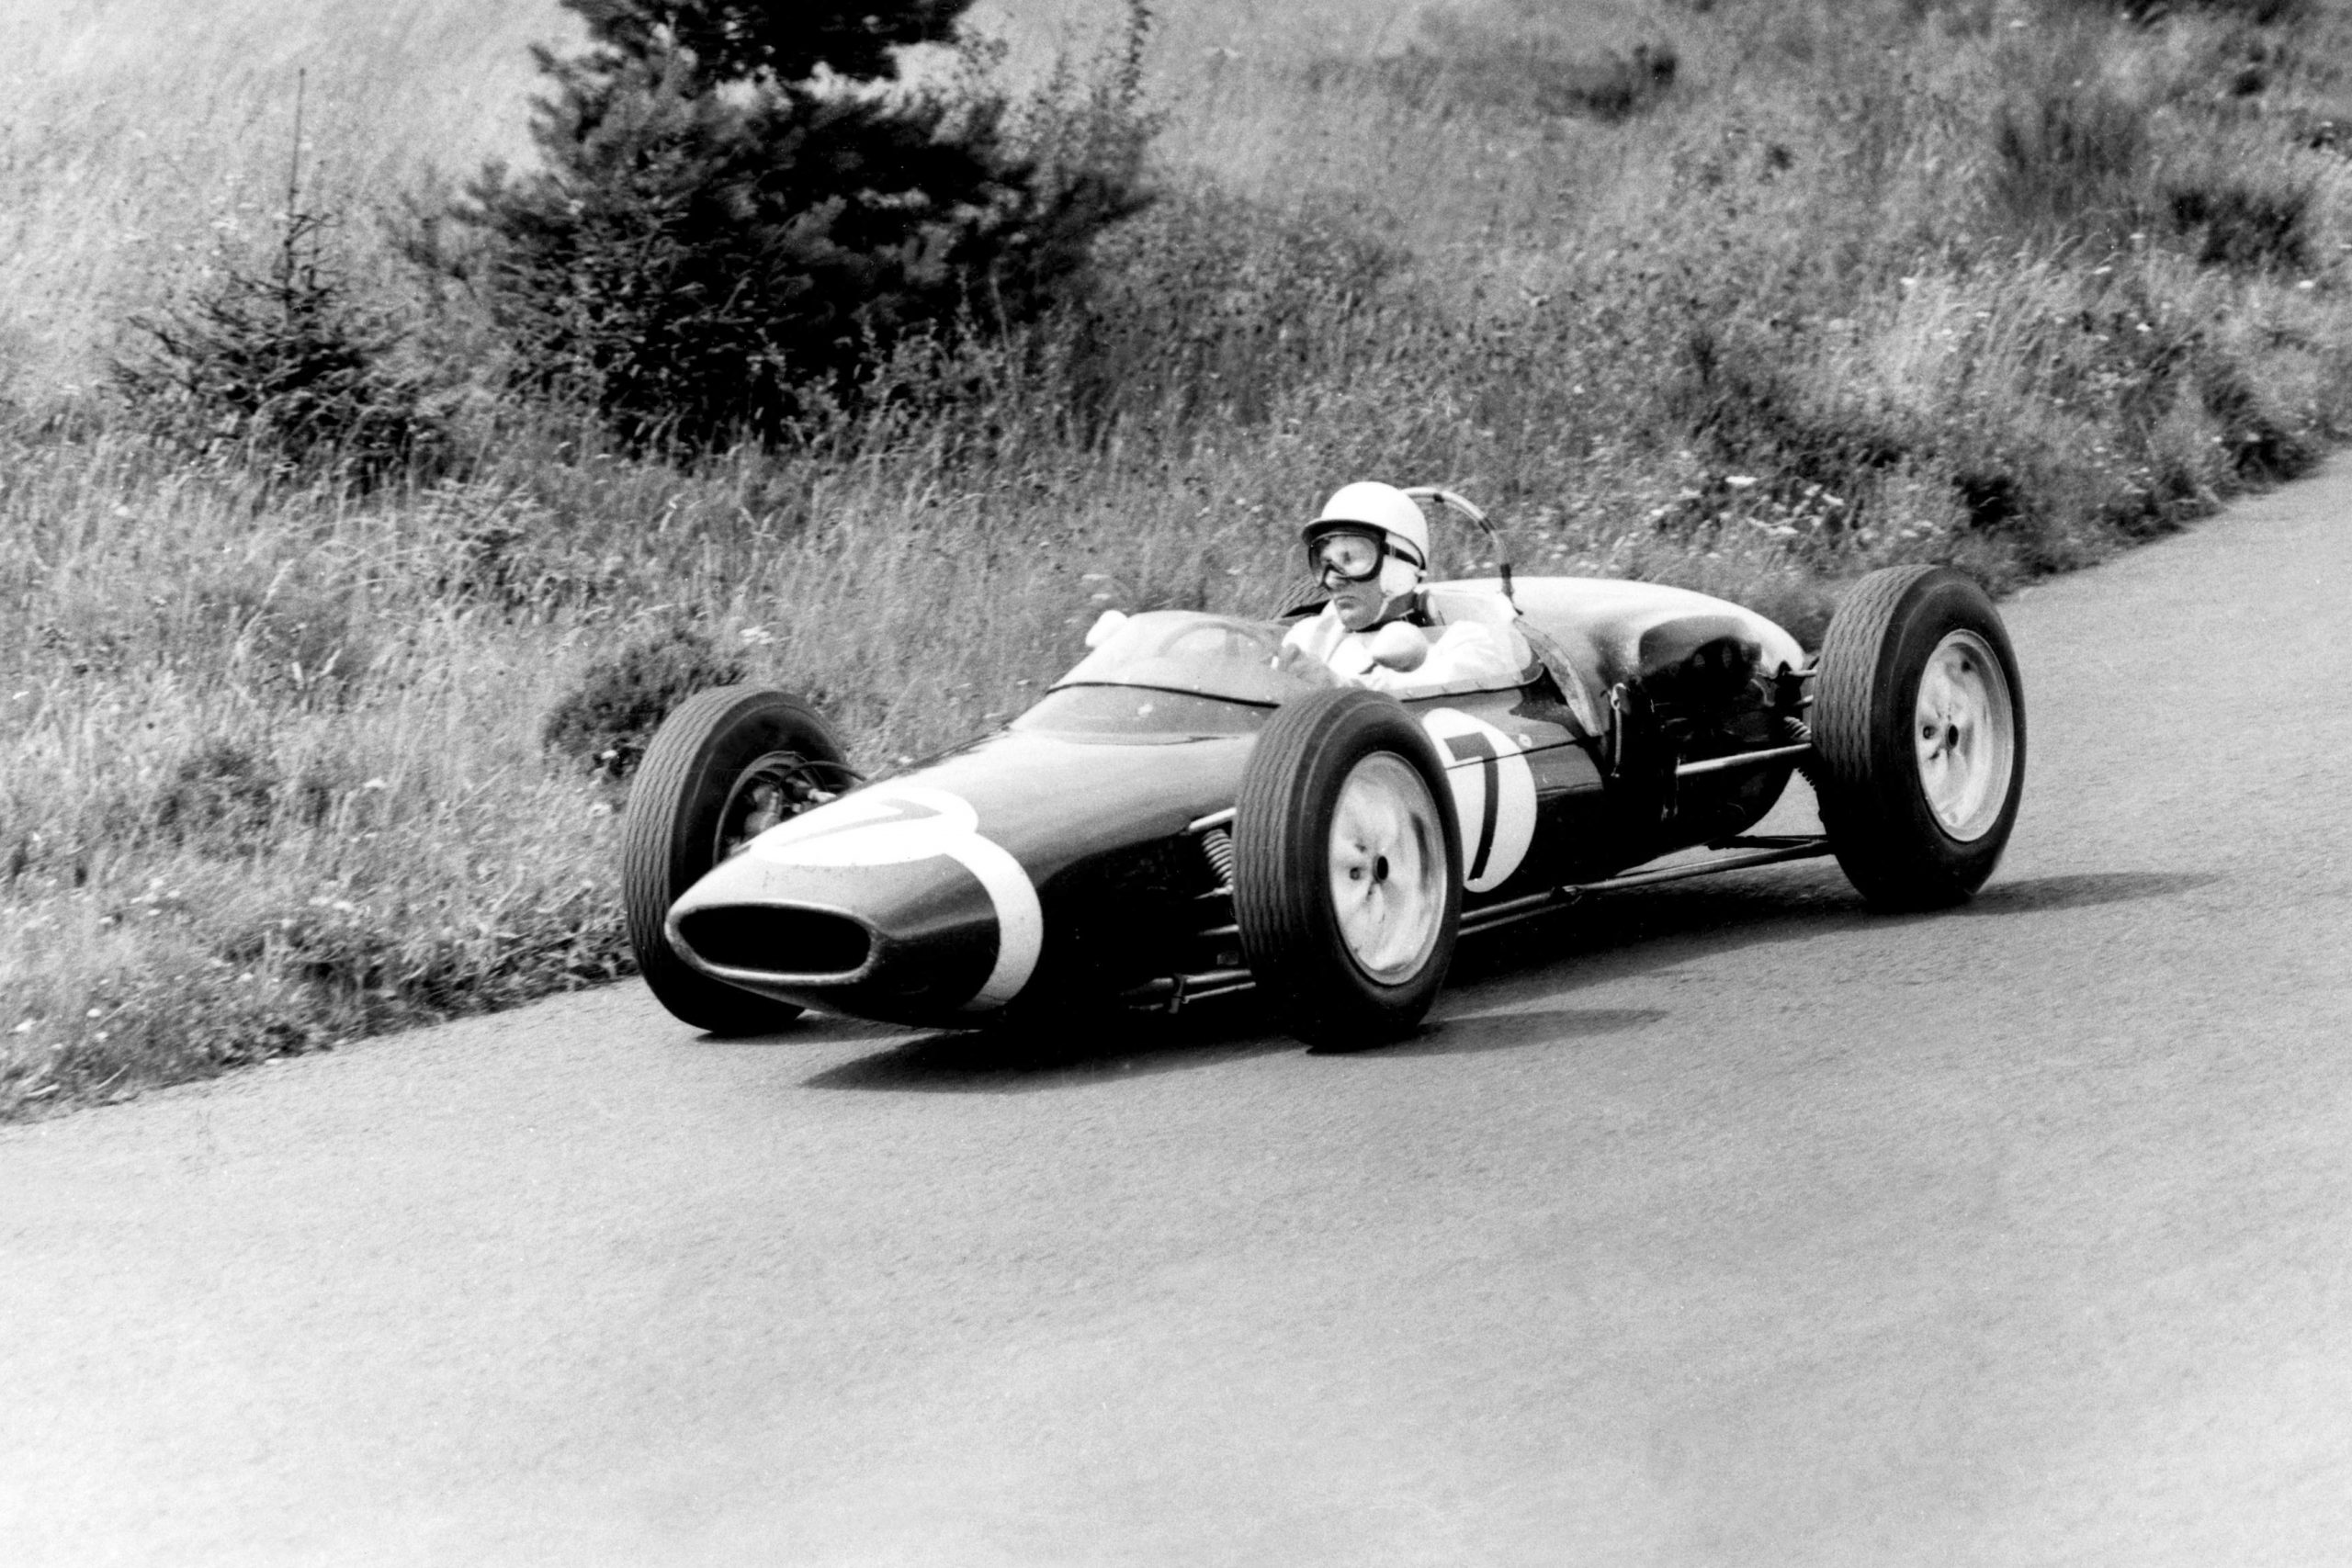 Stirling Moss in his Lotus 18/21-Climax.